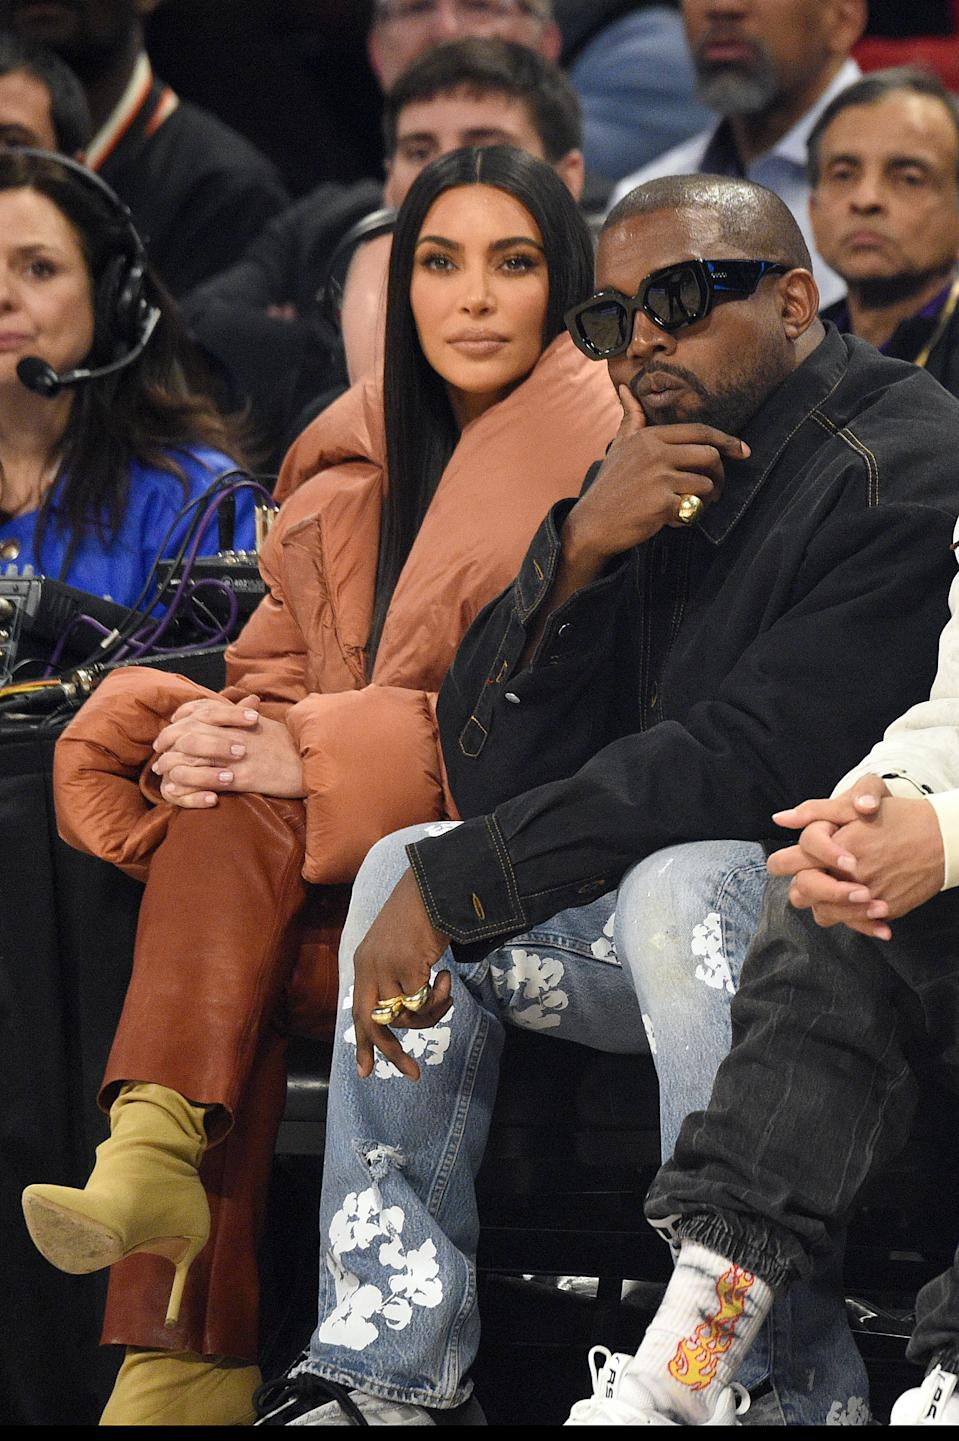 Kim Kardashian West (L) and Kanye West attend the 69th NBA All-Star Game at United Center on February 16, 2020 in Chicago, Illinois.